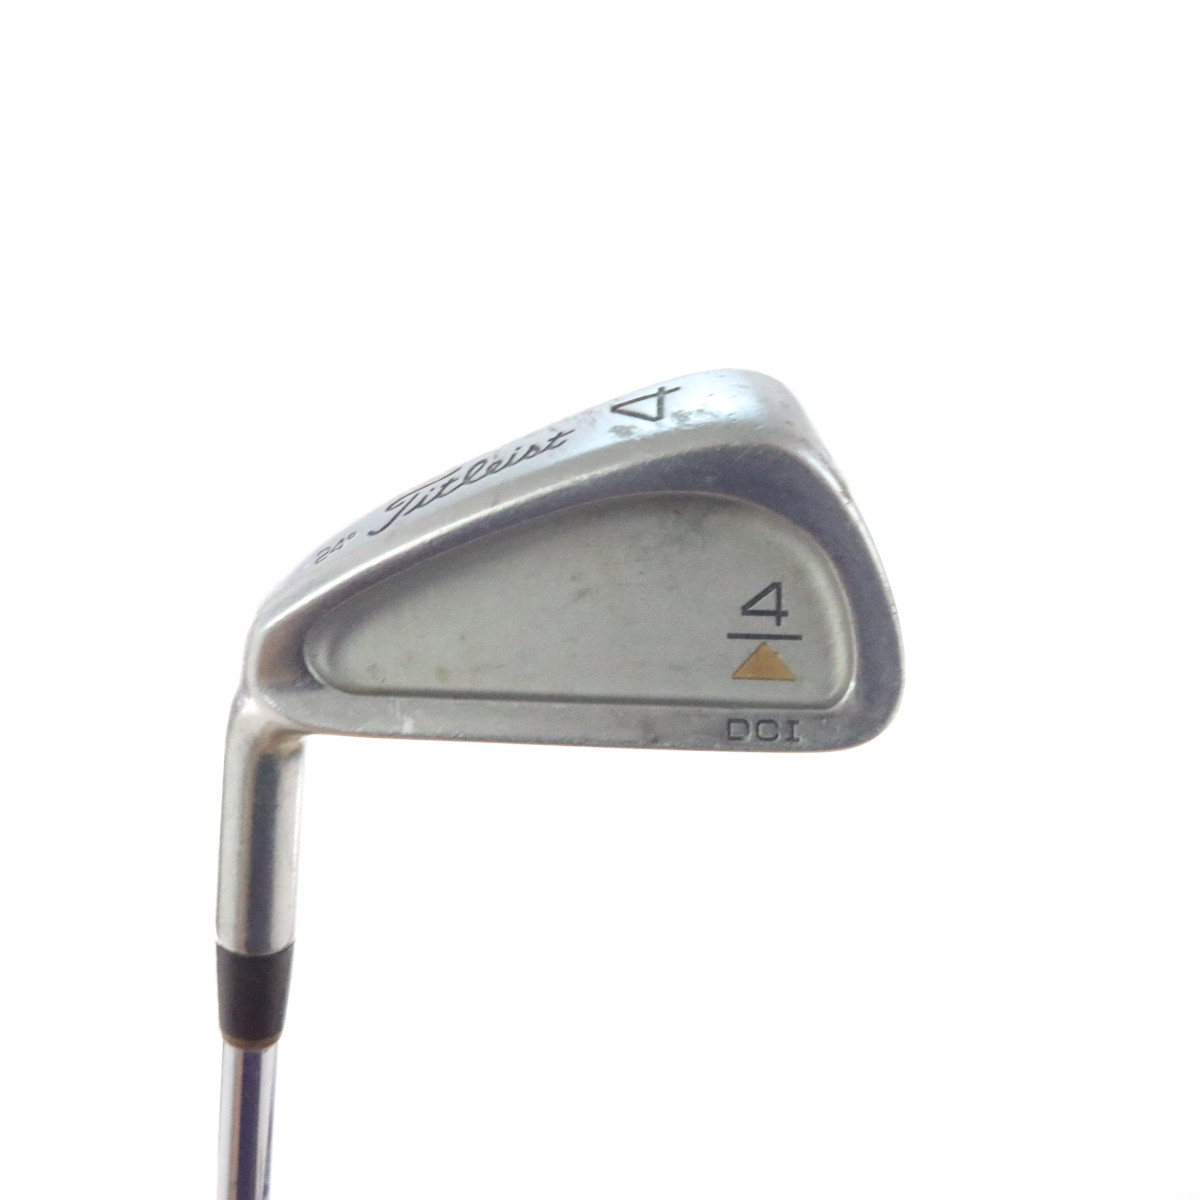 Titleist DCI Individual 4 Iron Steel Shaft Regular Flex Left-Handed 42830G